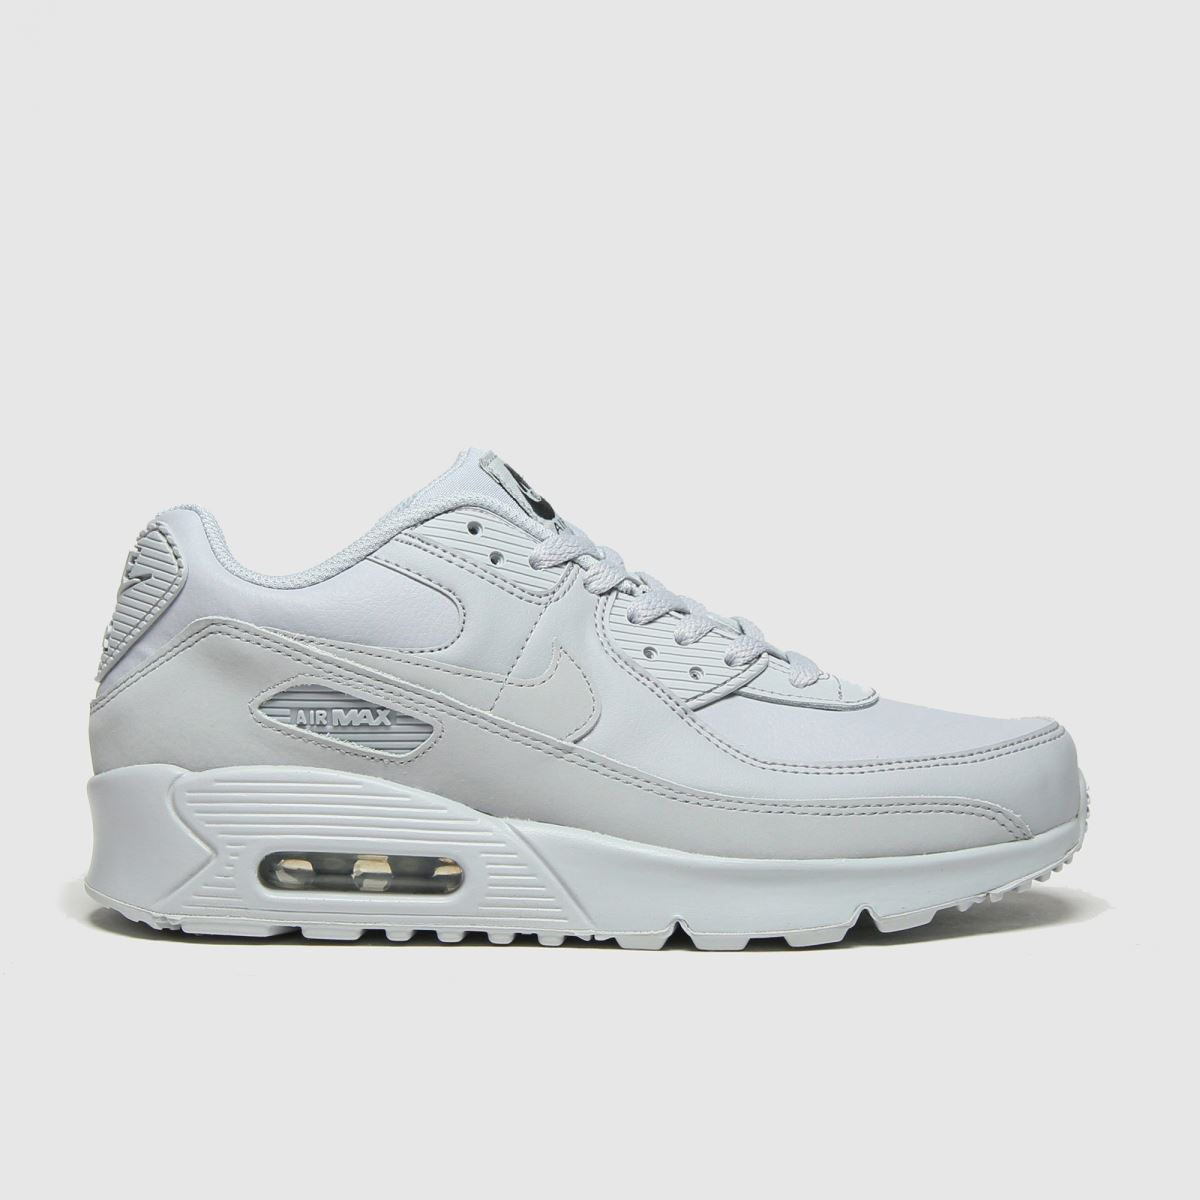 Nike Nike Light Grey Air Max 90 Ltr Trainers Youth